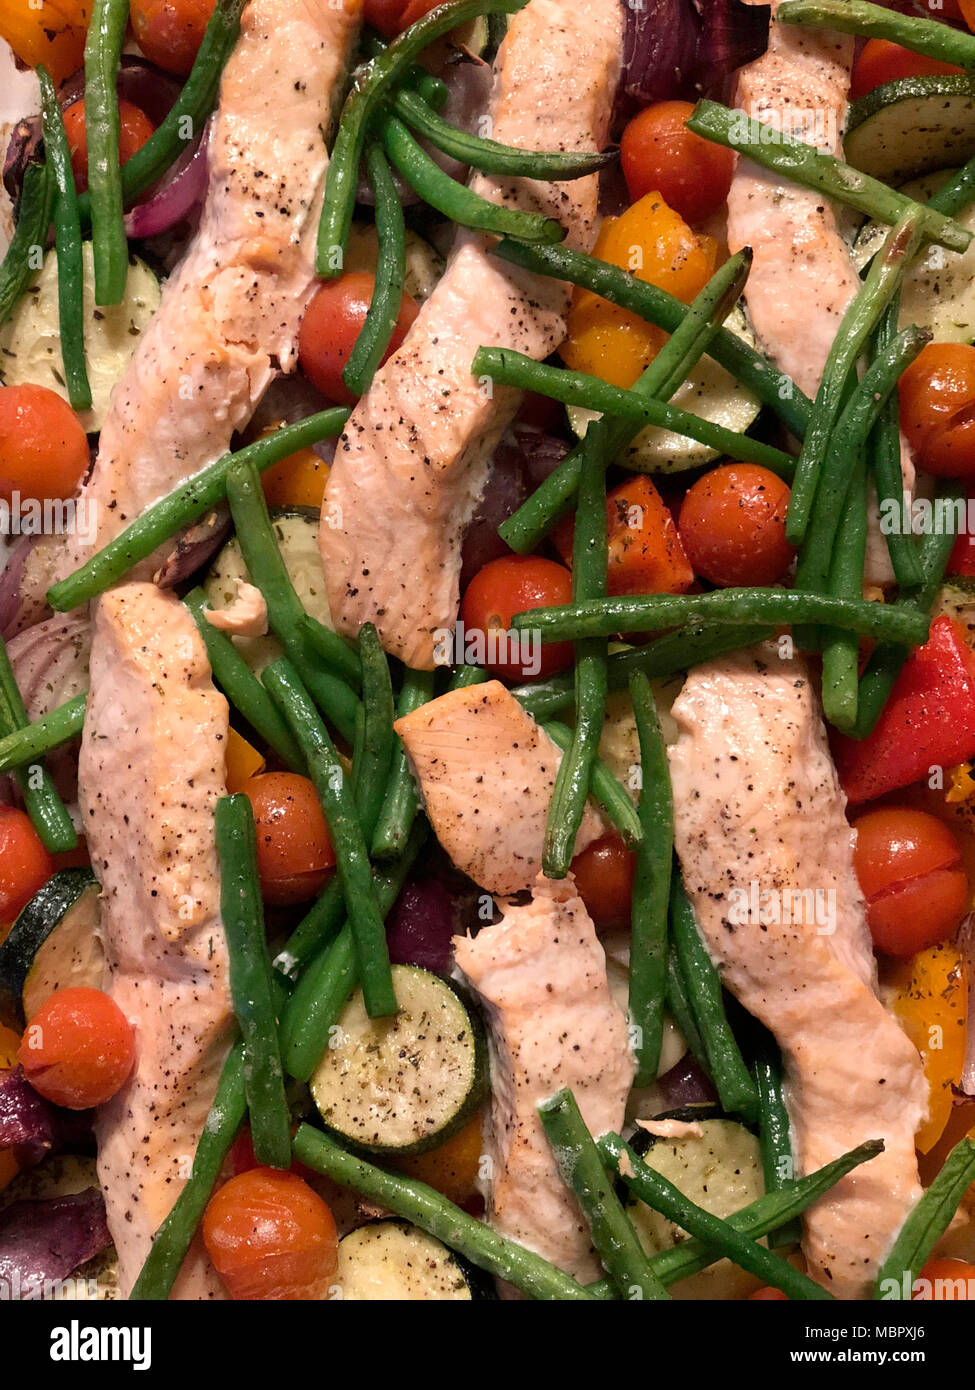 Freshly cooked salmon and vegetable bake - Stock Image